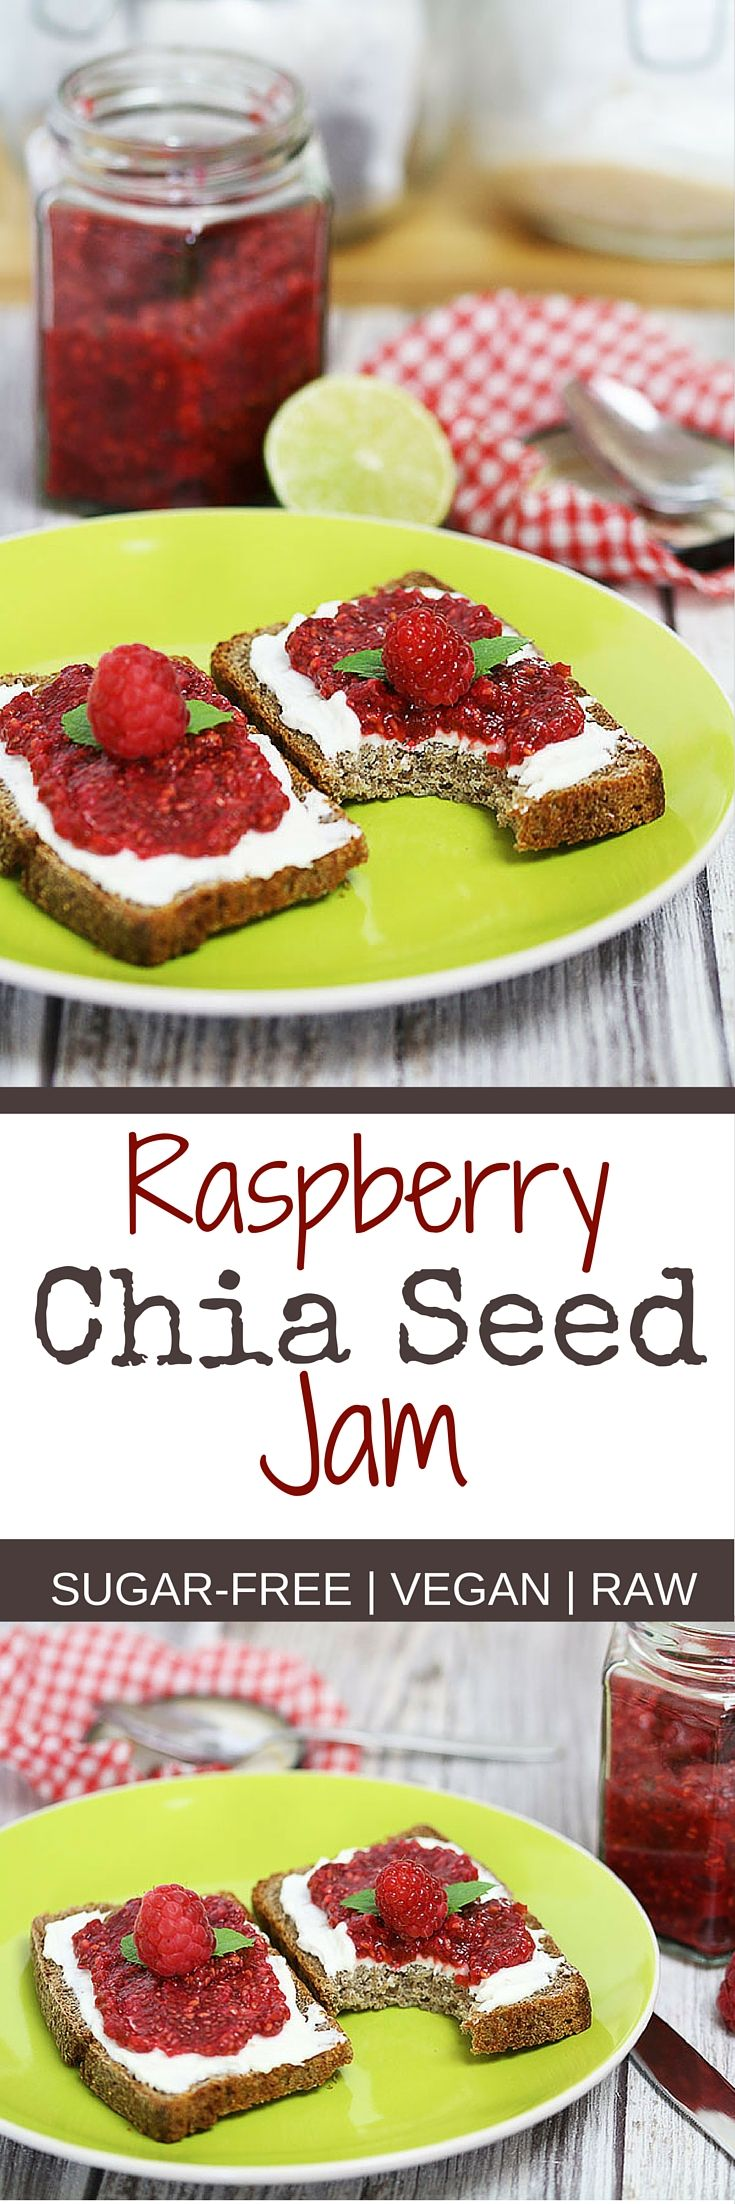 Raspberry Jam With Chia Seeds Sugar Free